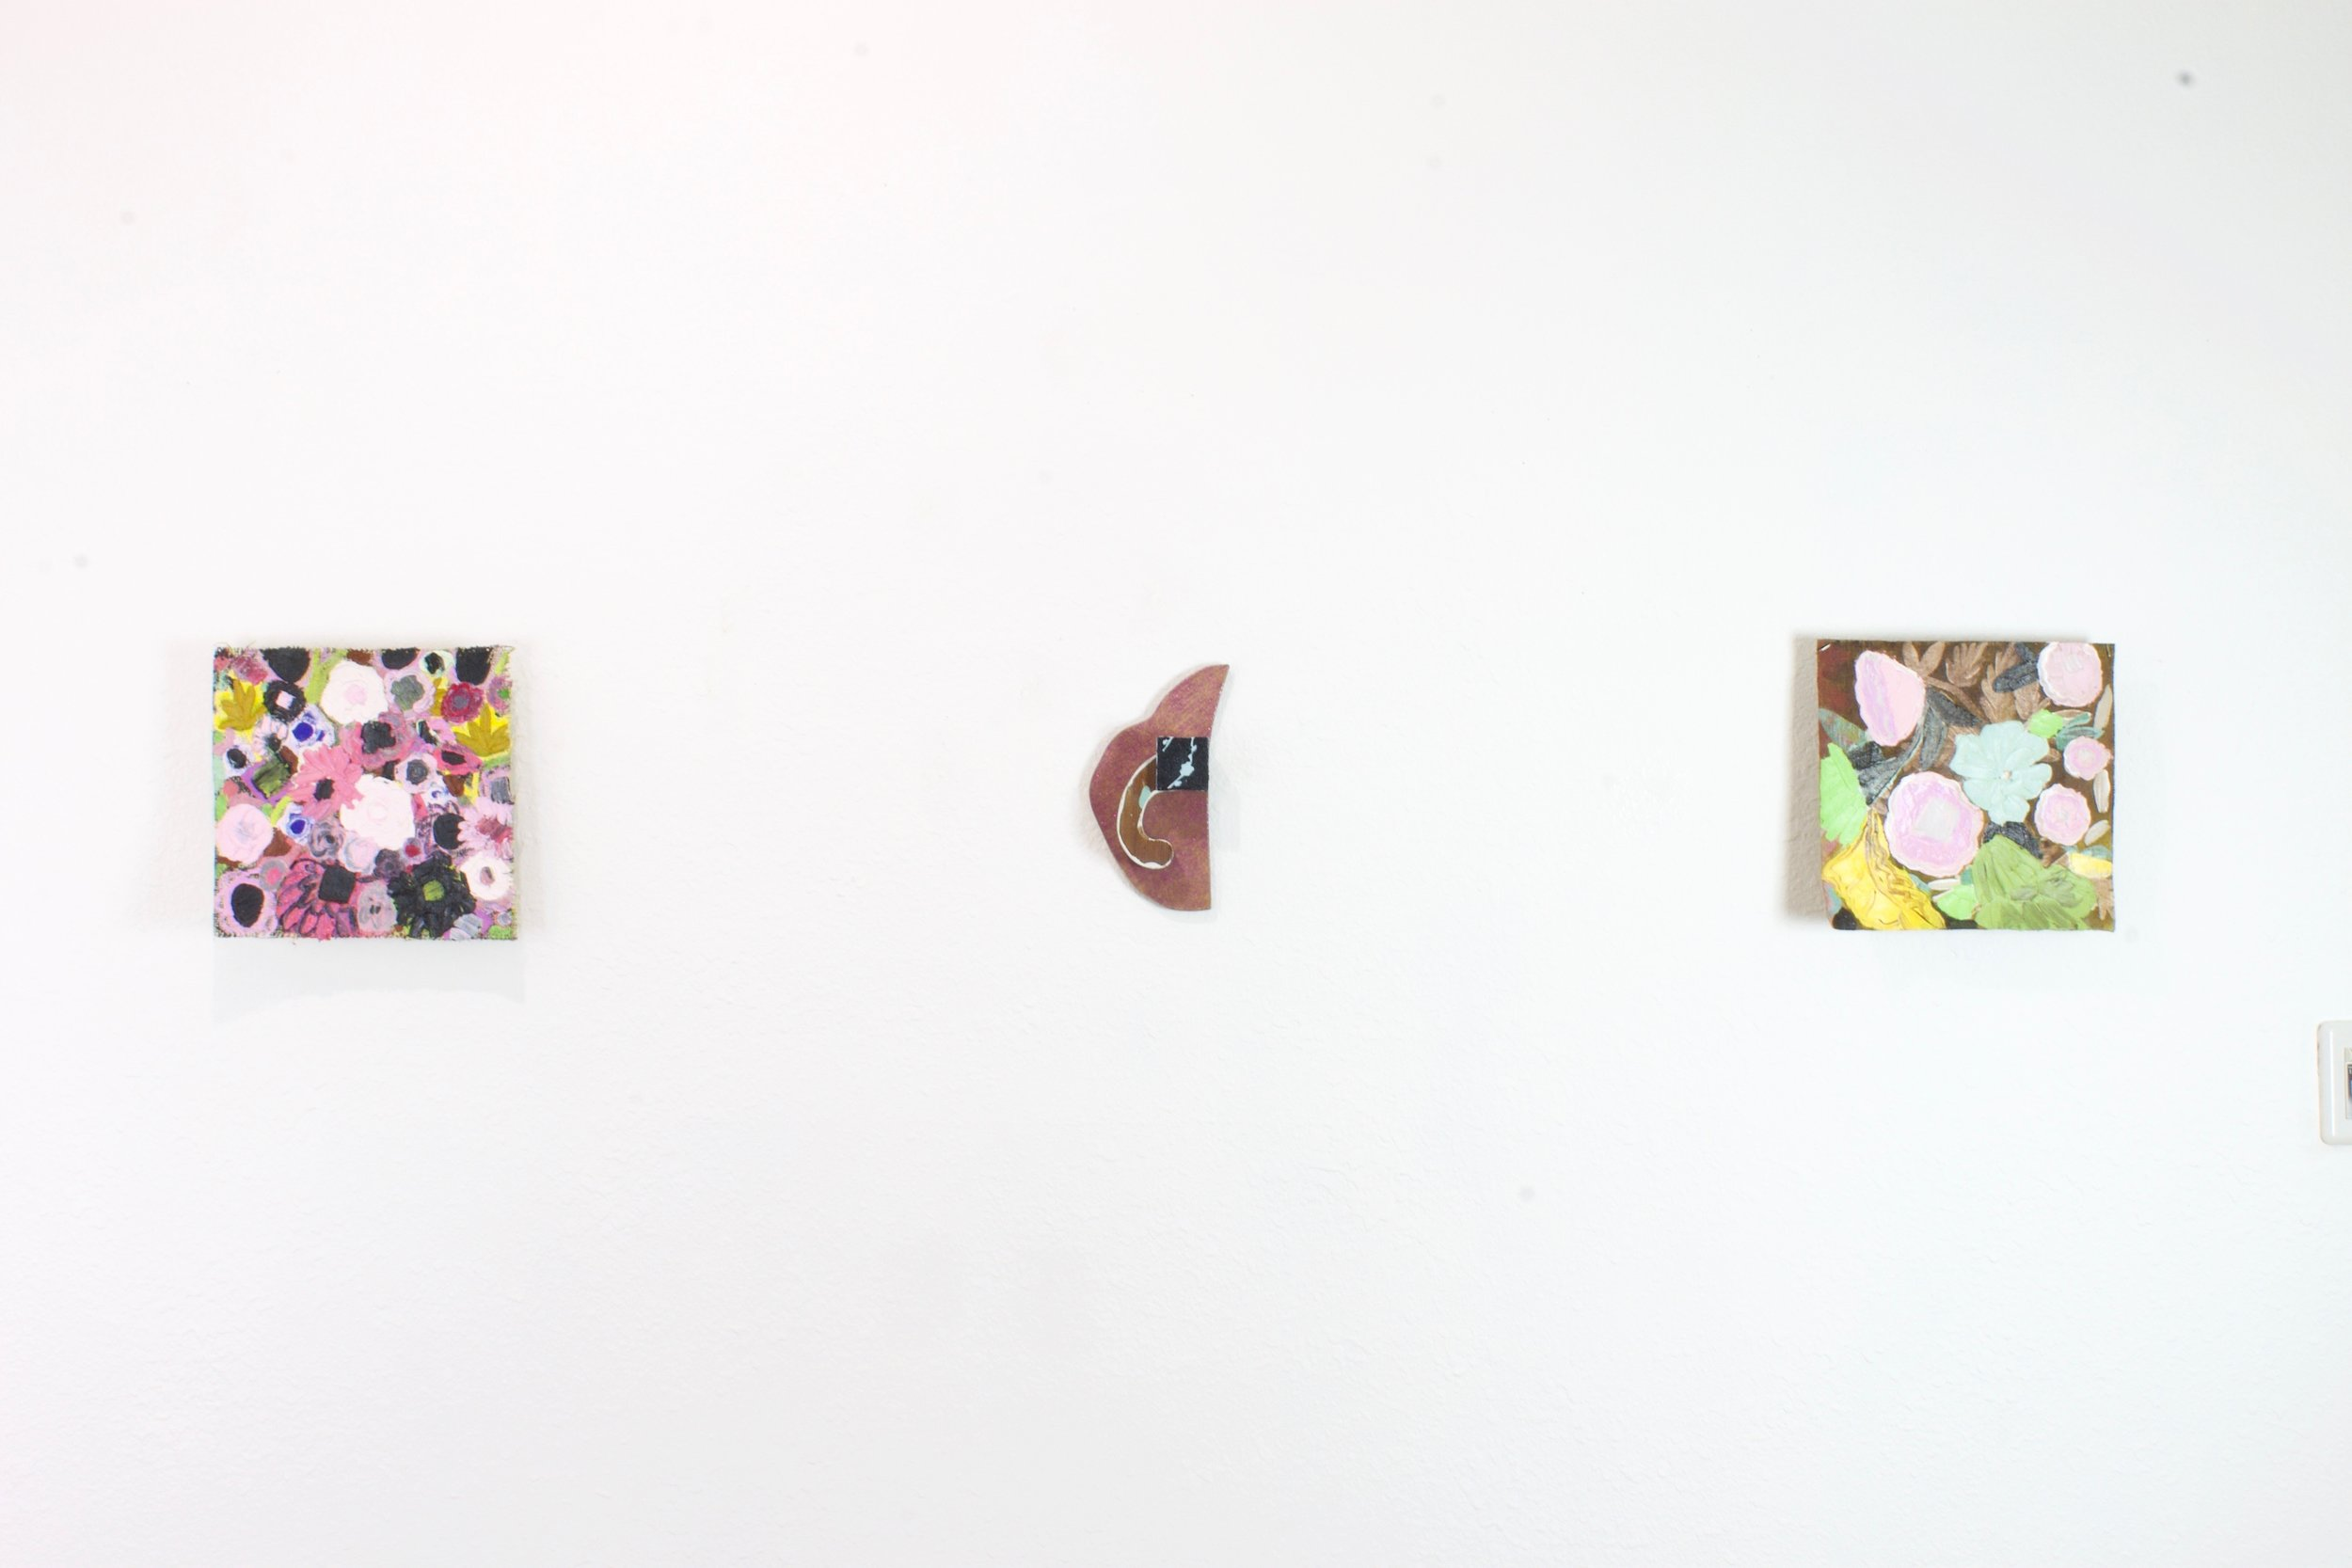 Installation View.  Justyn Hegreberg and Amy Bay at SNAG Gallery